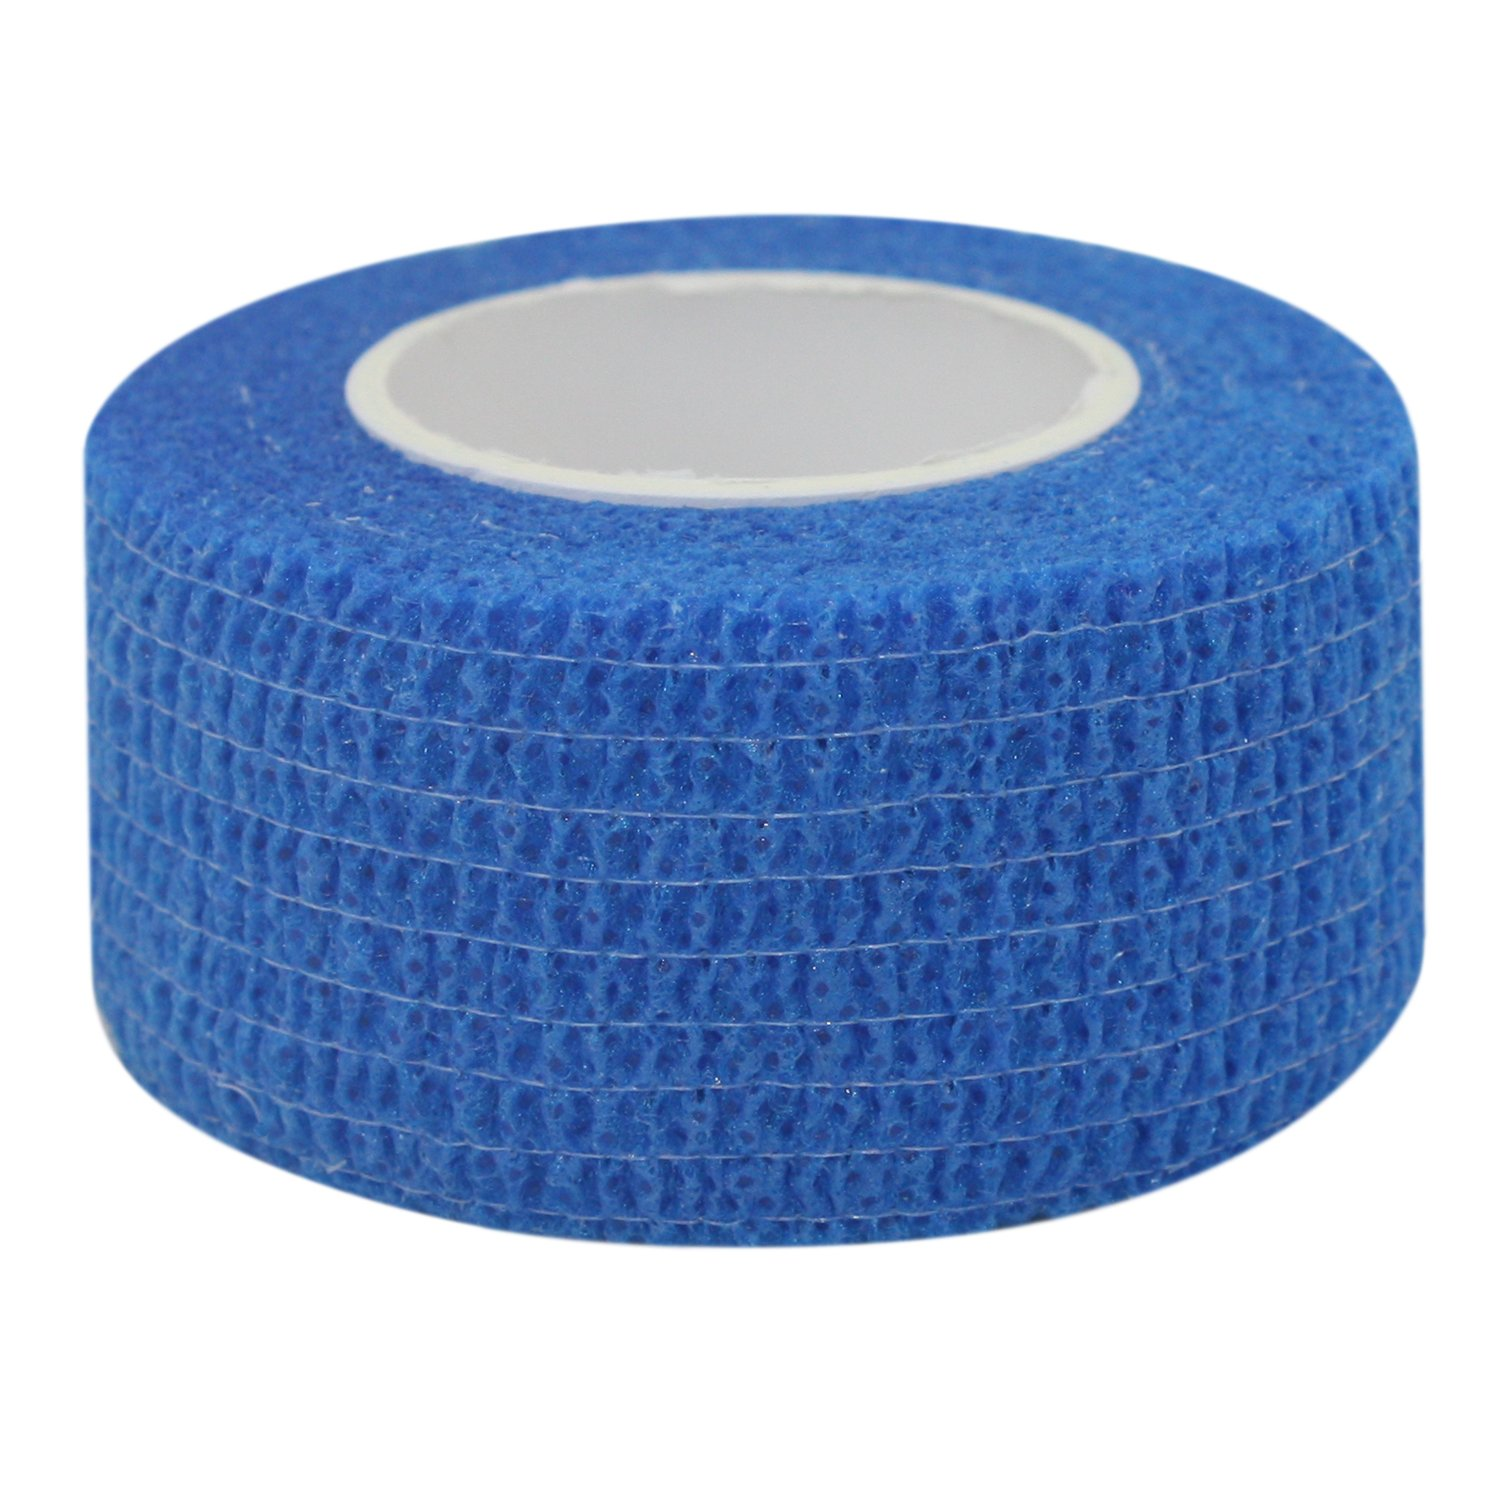 COMOmed Self Stick Cohesive Bandage Latex FDA Approved 1''x5 Yards First Aid Ace Bandages Stretch Sport Wrap Vet Tape for Wrist Ankle Sprain and Swelling,Blue